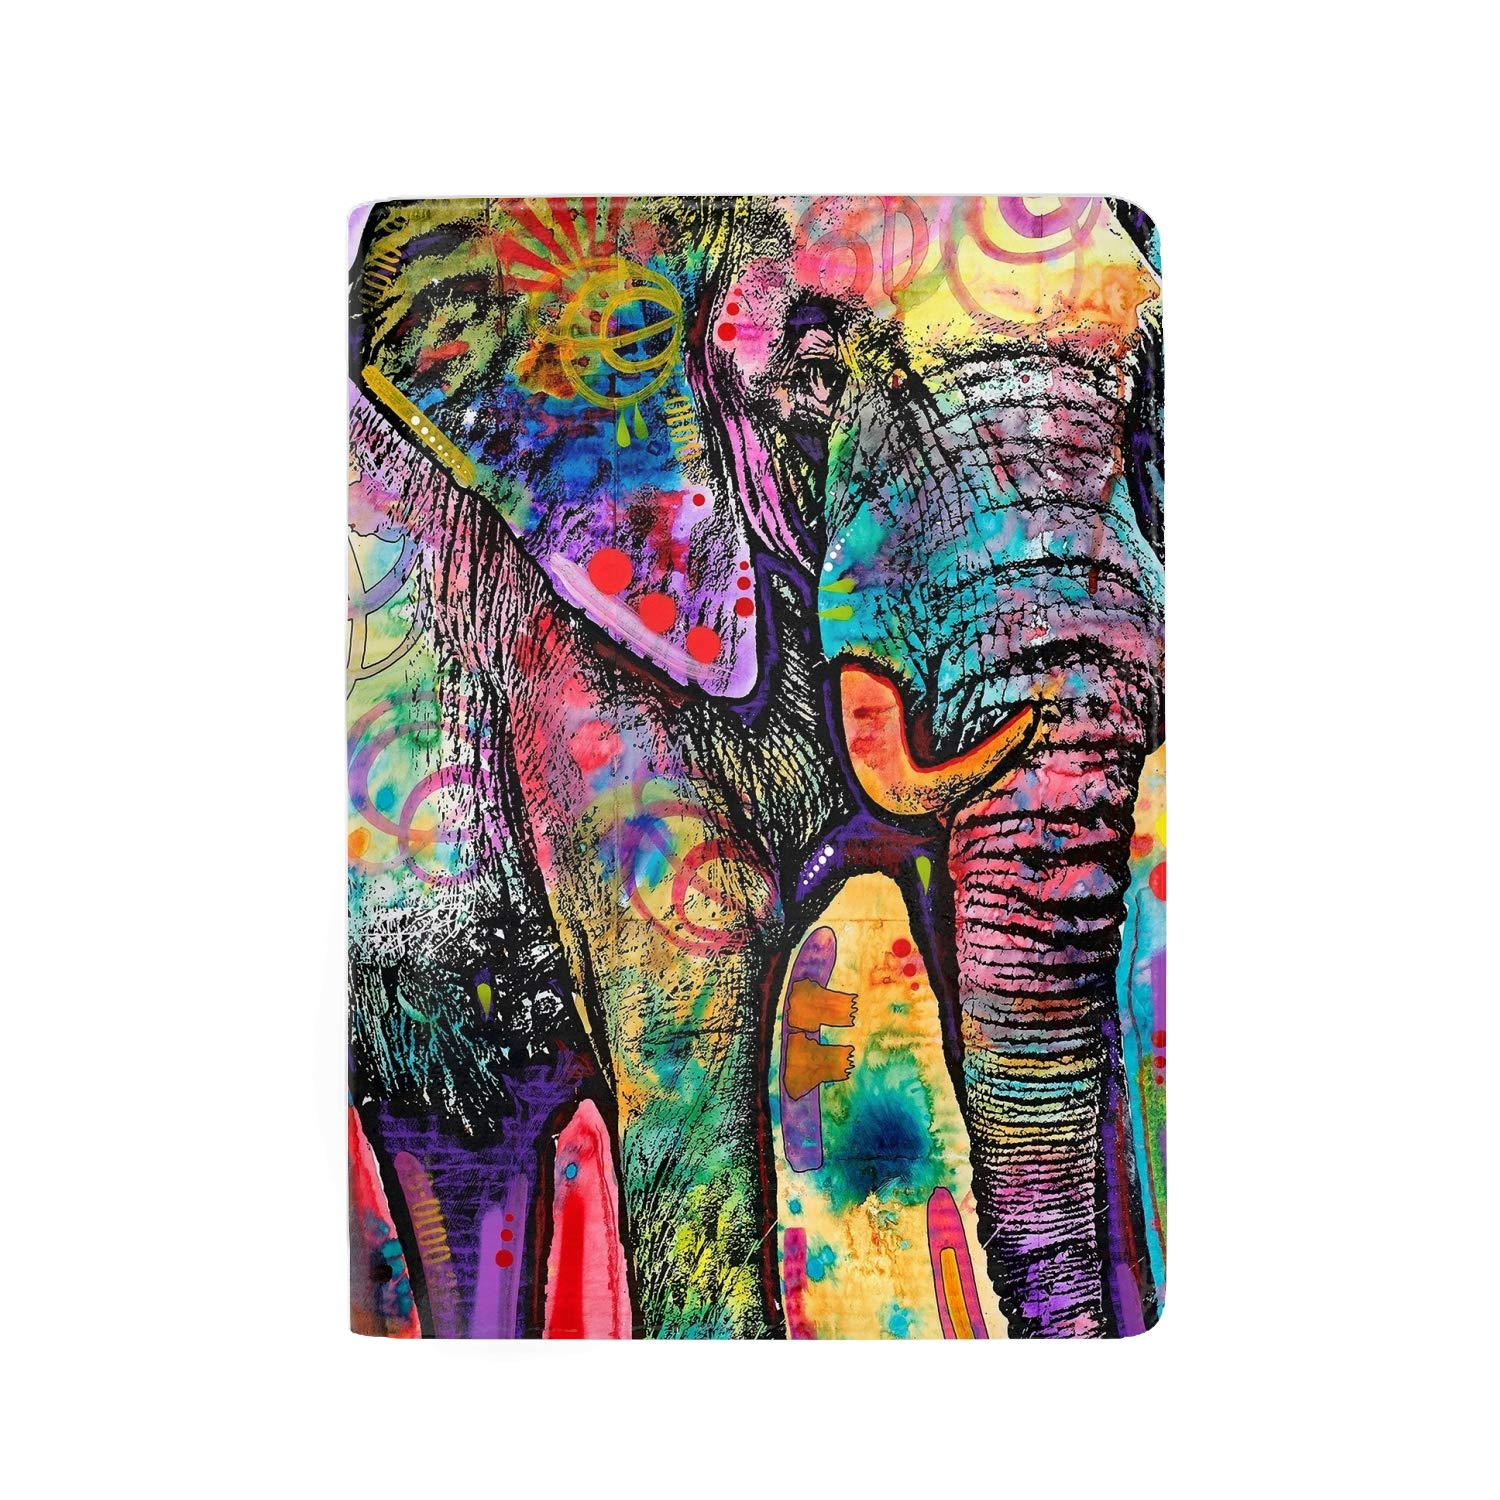 Protest Boy Travel Leather RFID Blocking Case Wallet for Passport with Passport Holder Cover